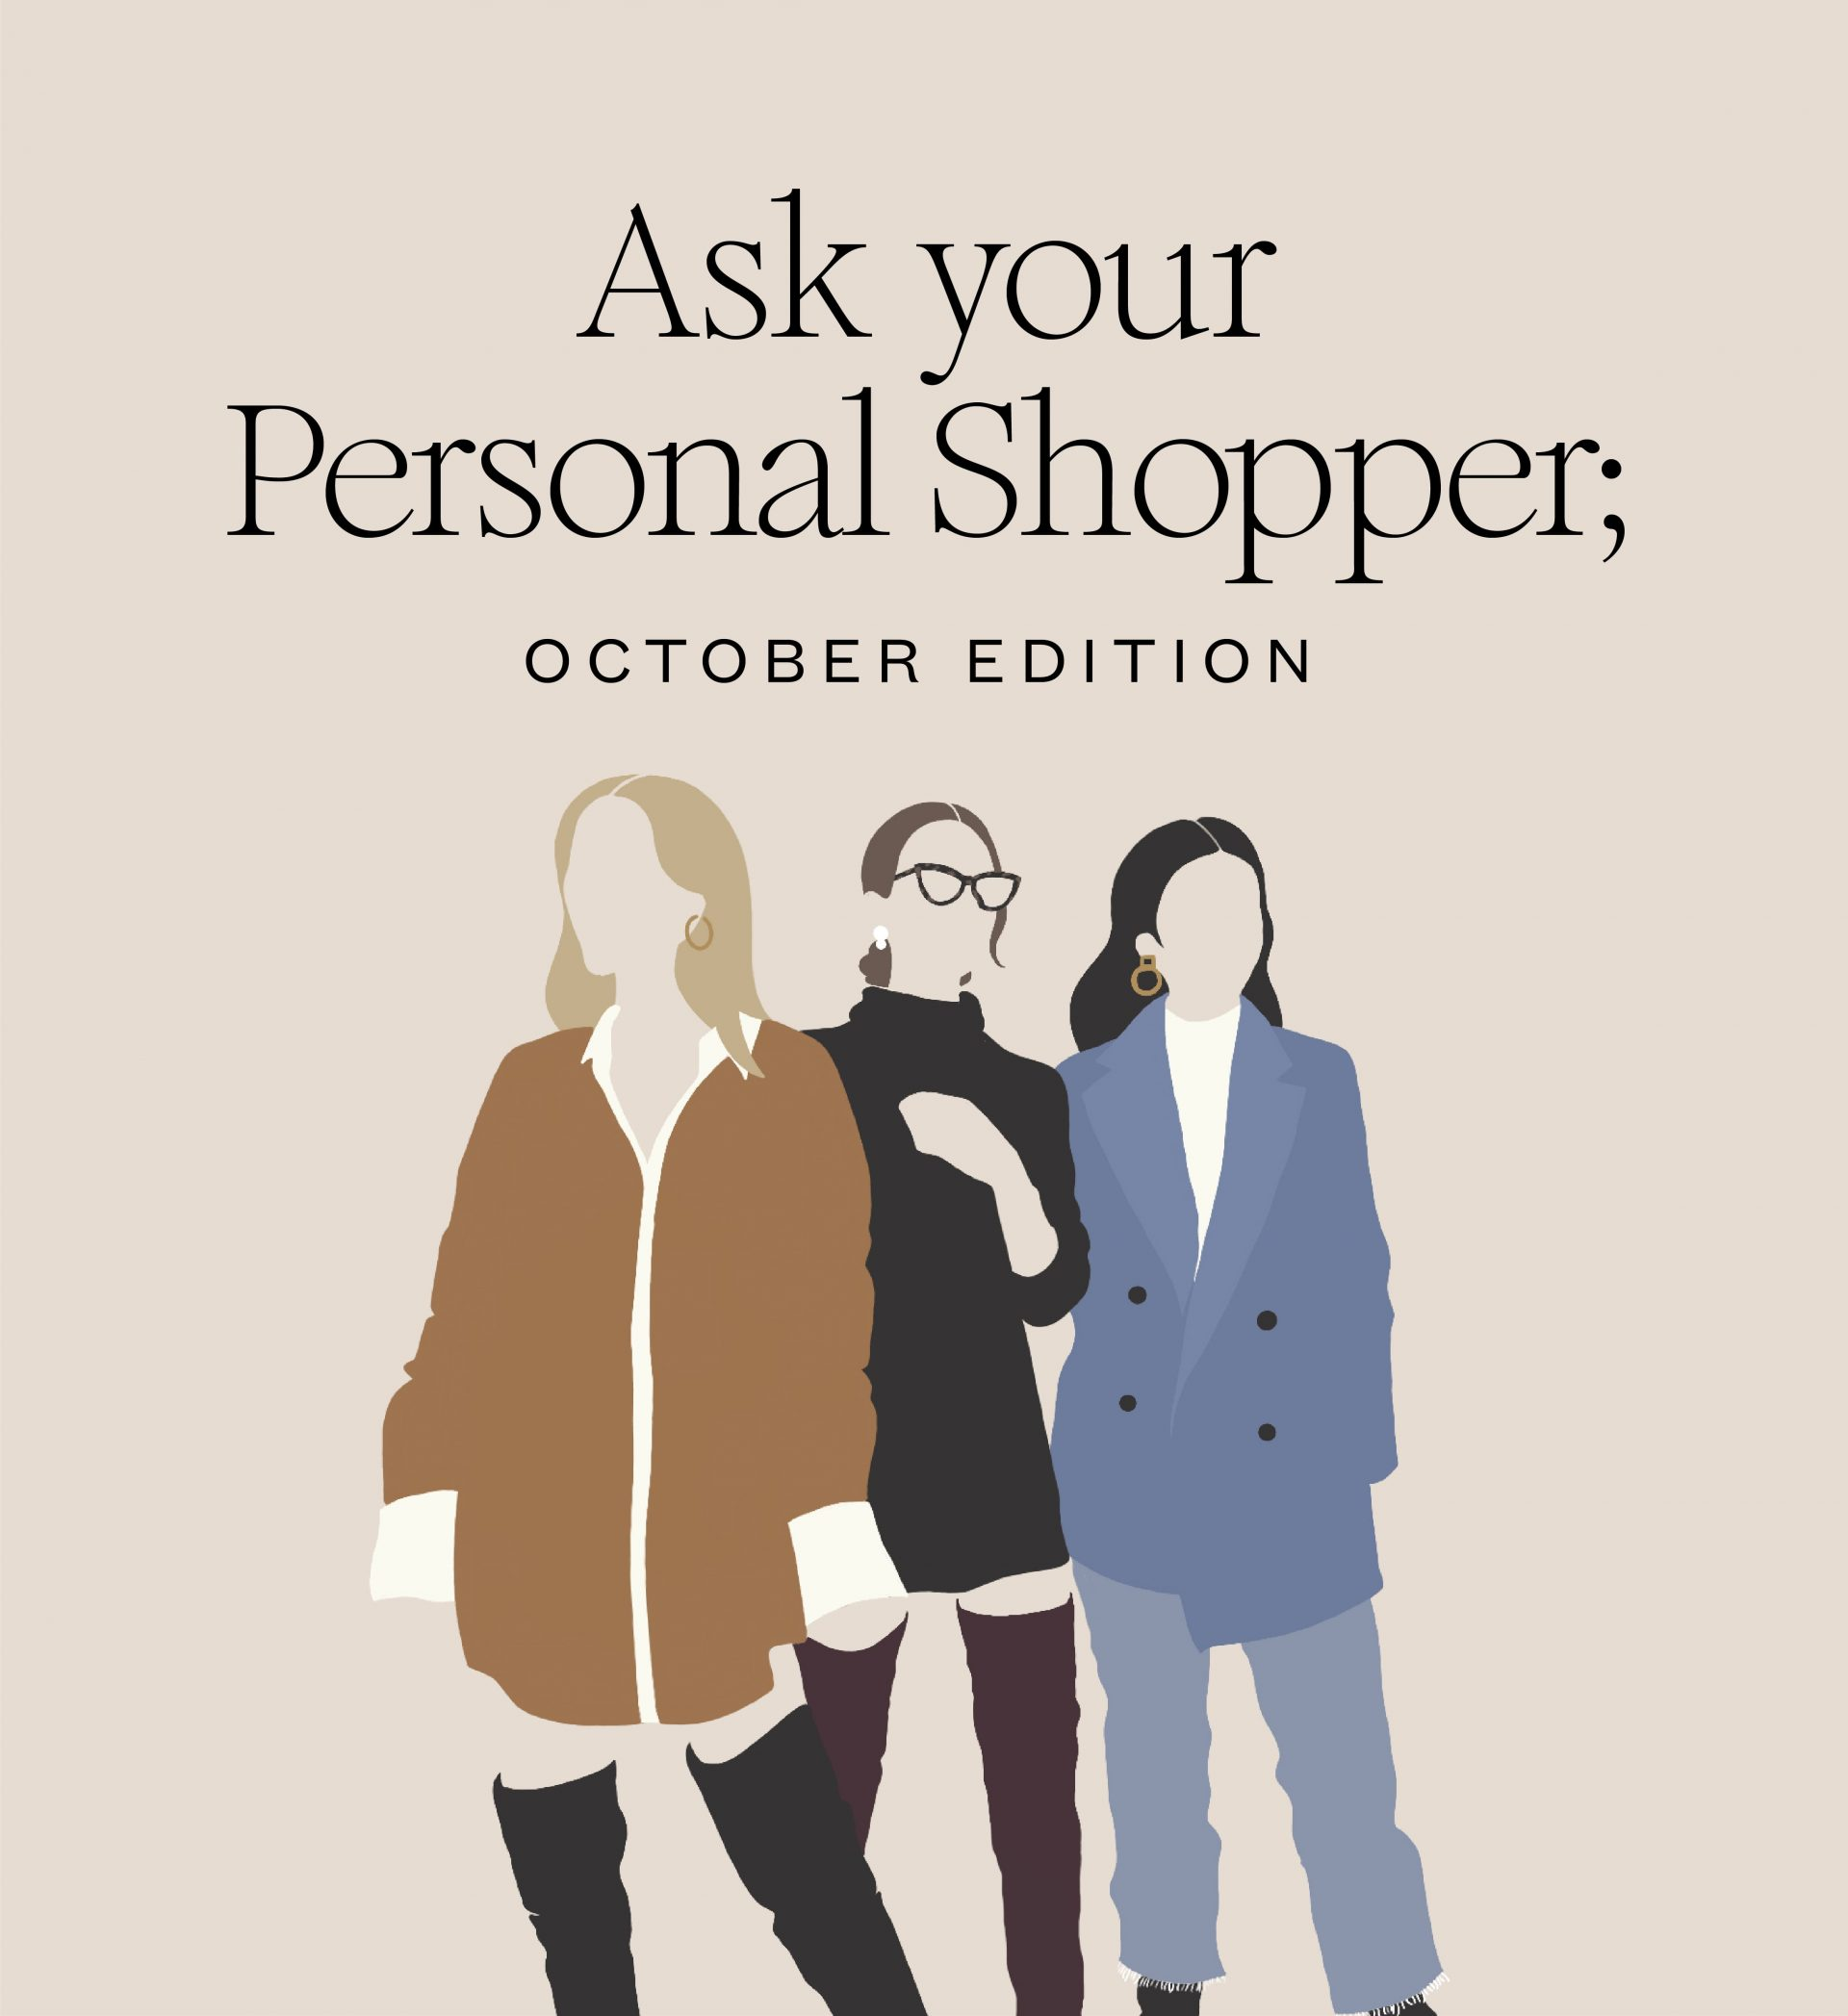 Ask to personal shopper october